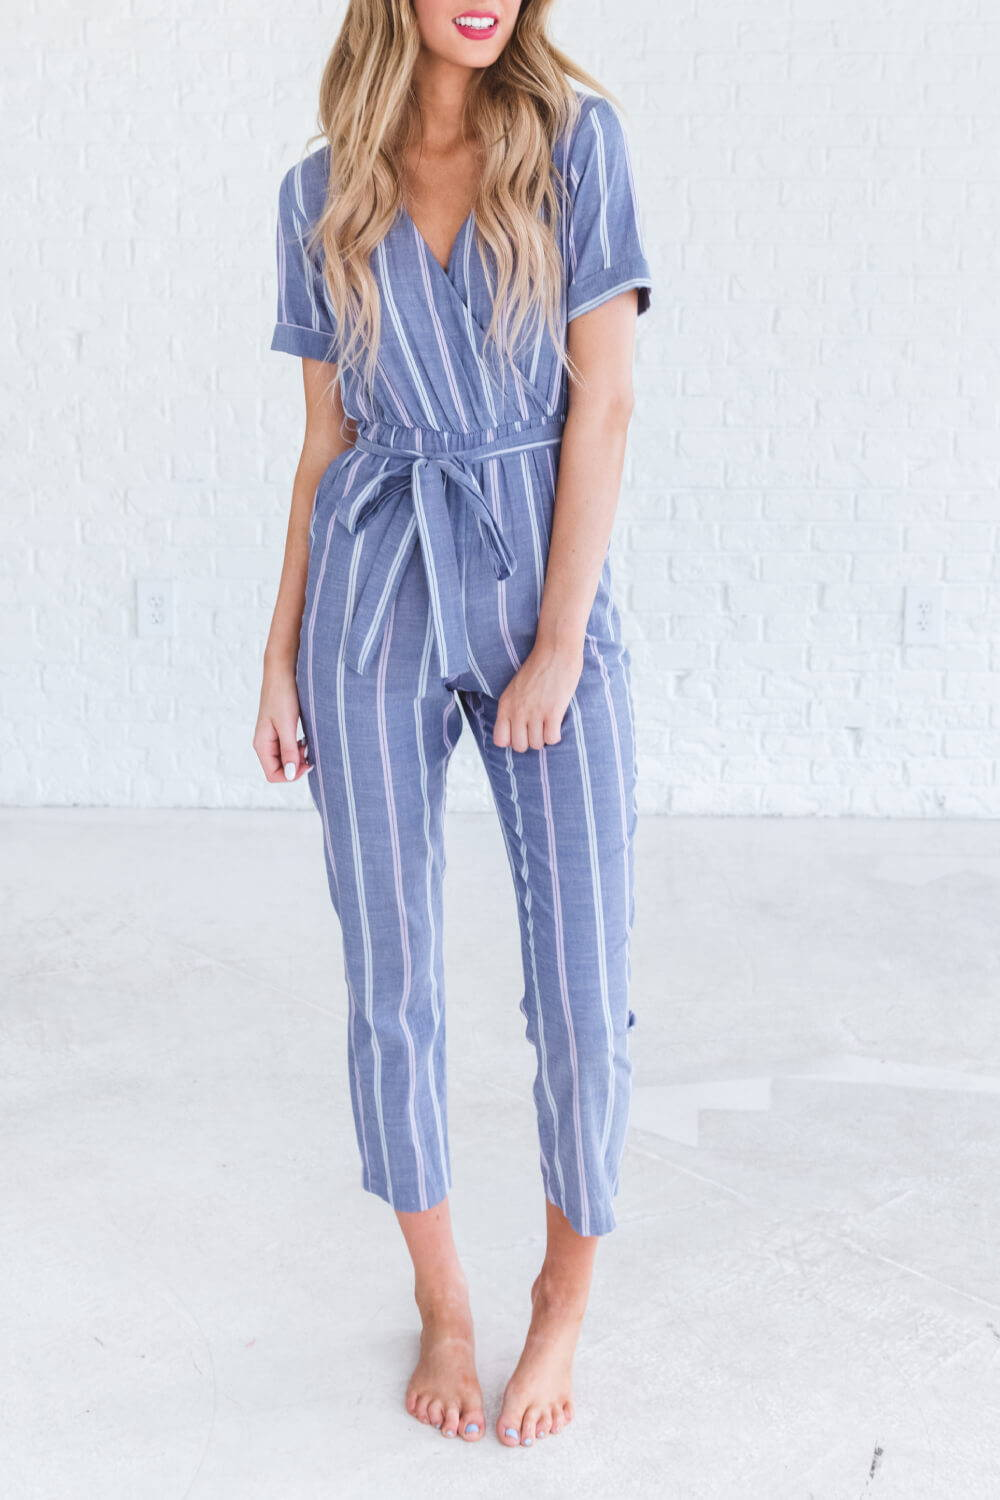 Summer Reading List 2018 spring jumpsuit on woman